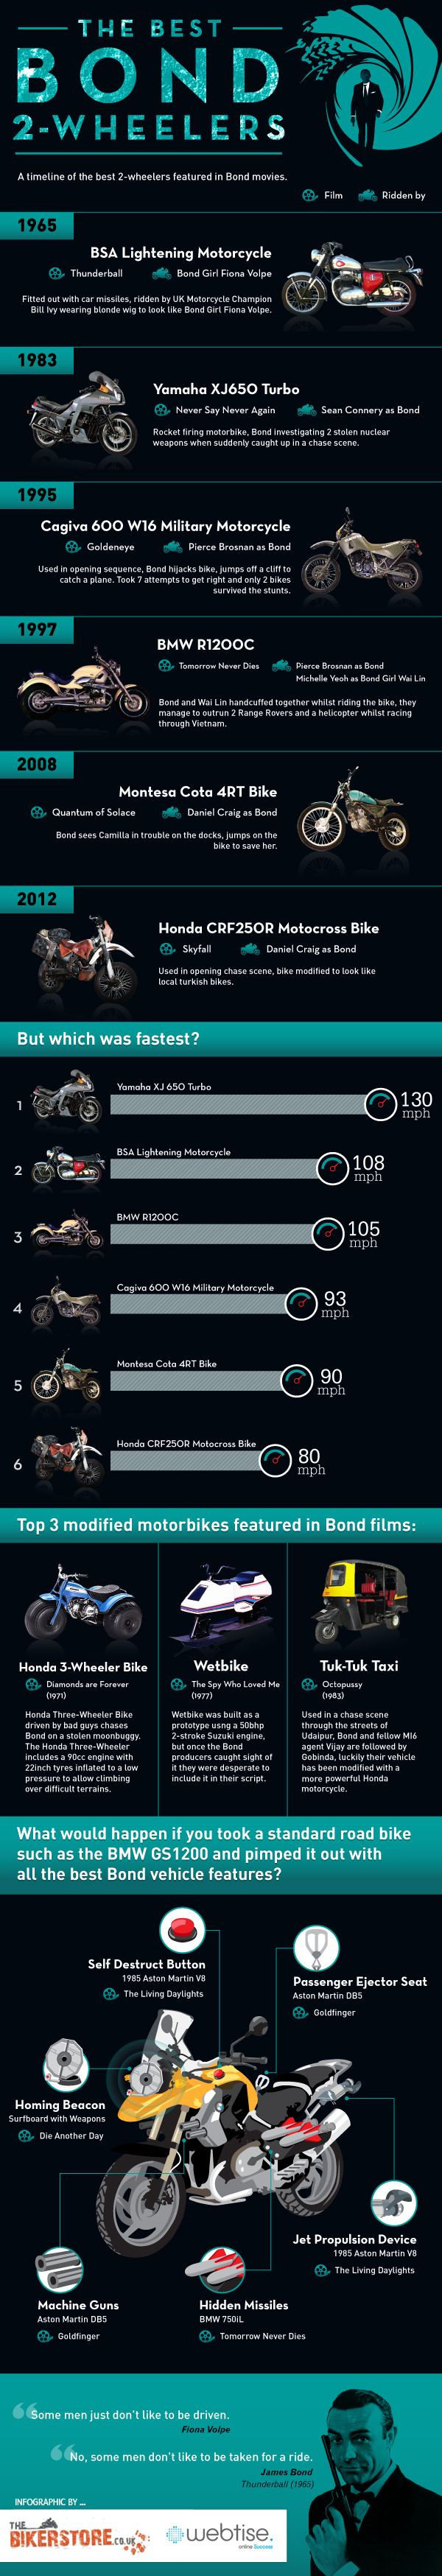 At timeline of the best 2-wheelers featured in Bond movies through-out James Bond's history.